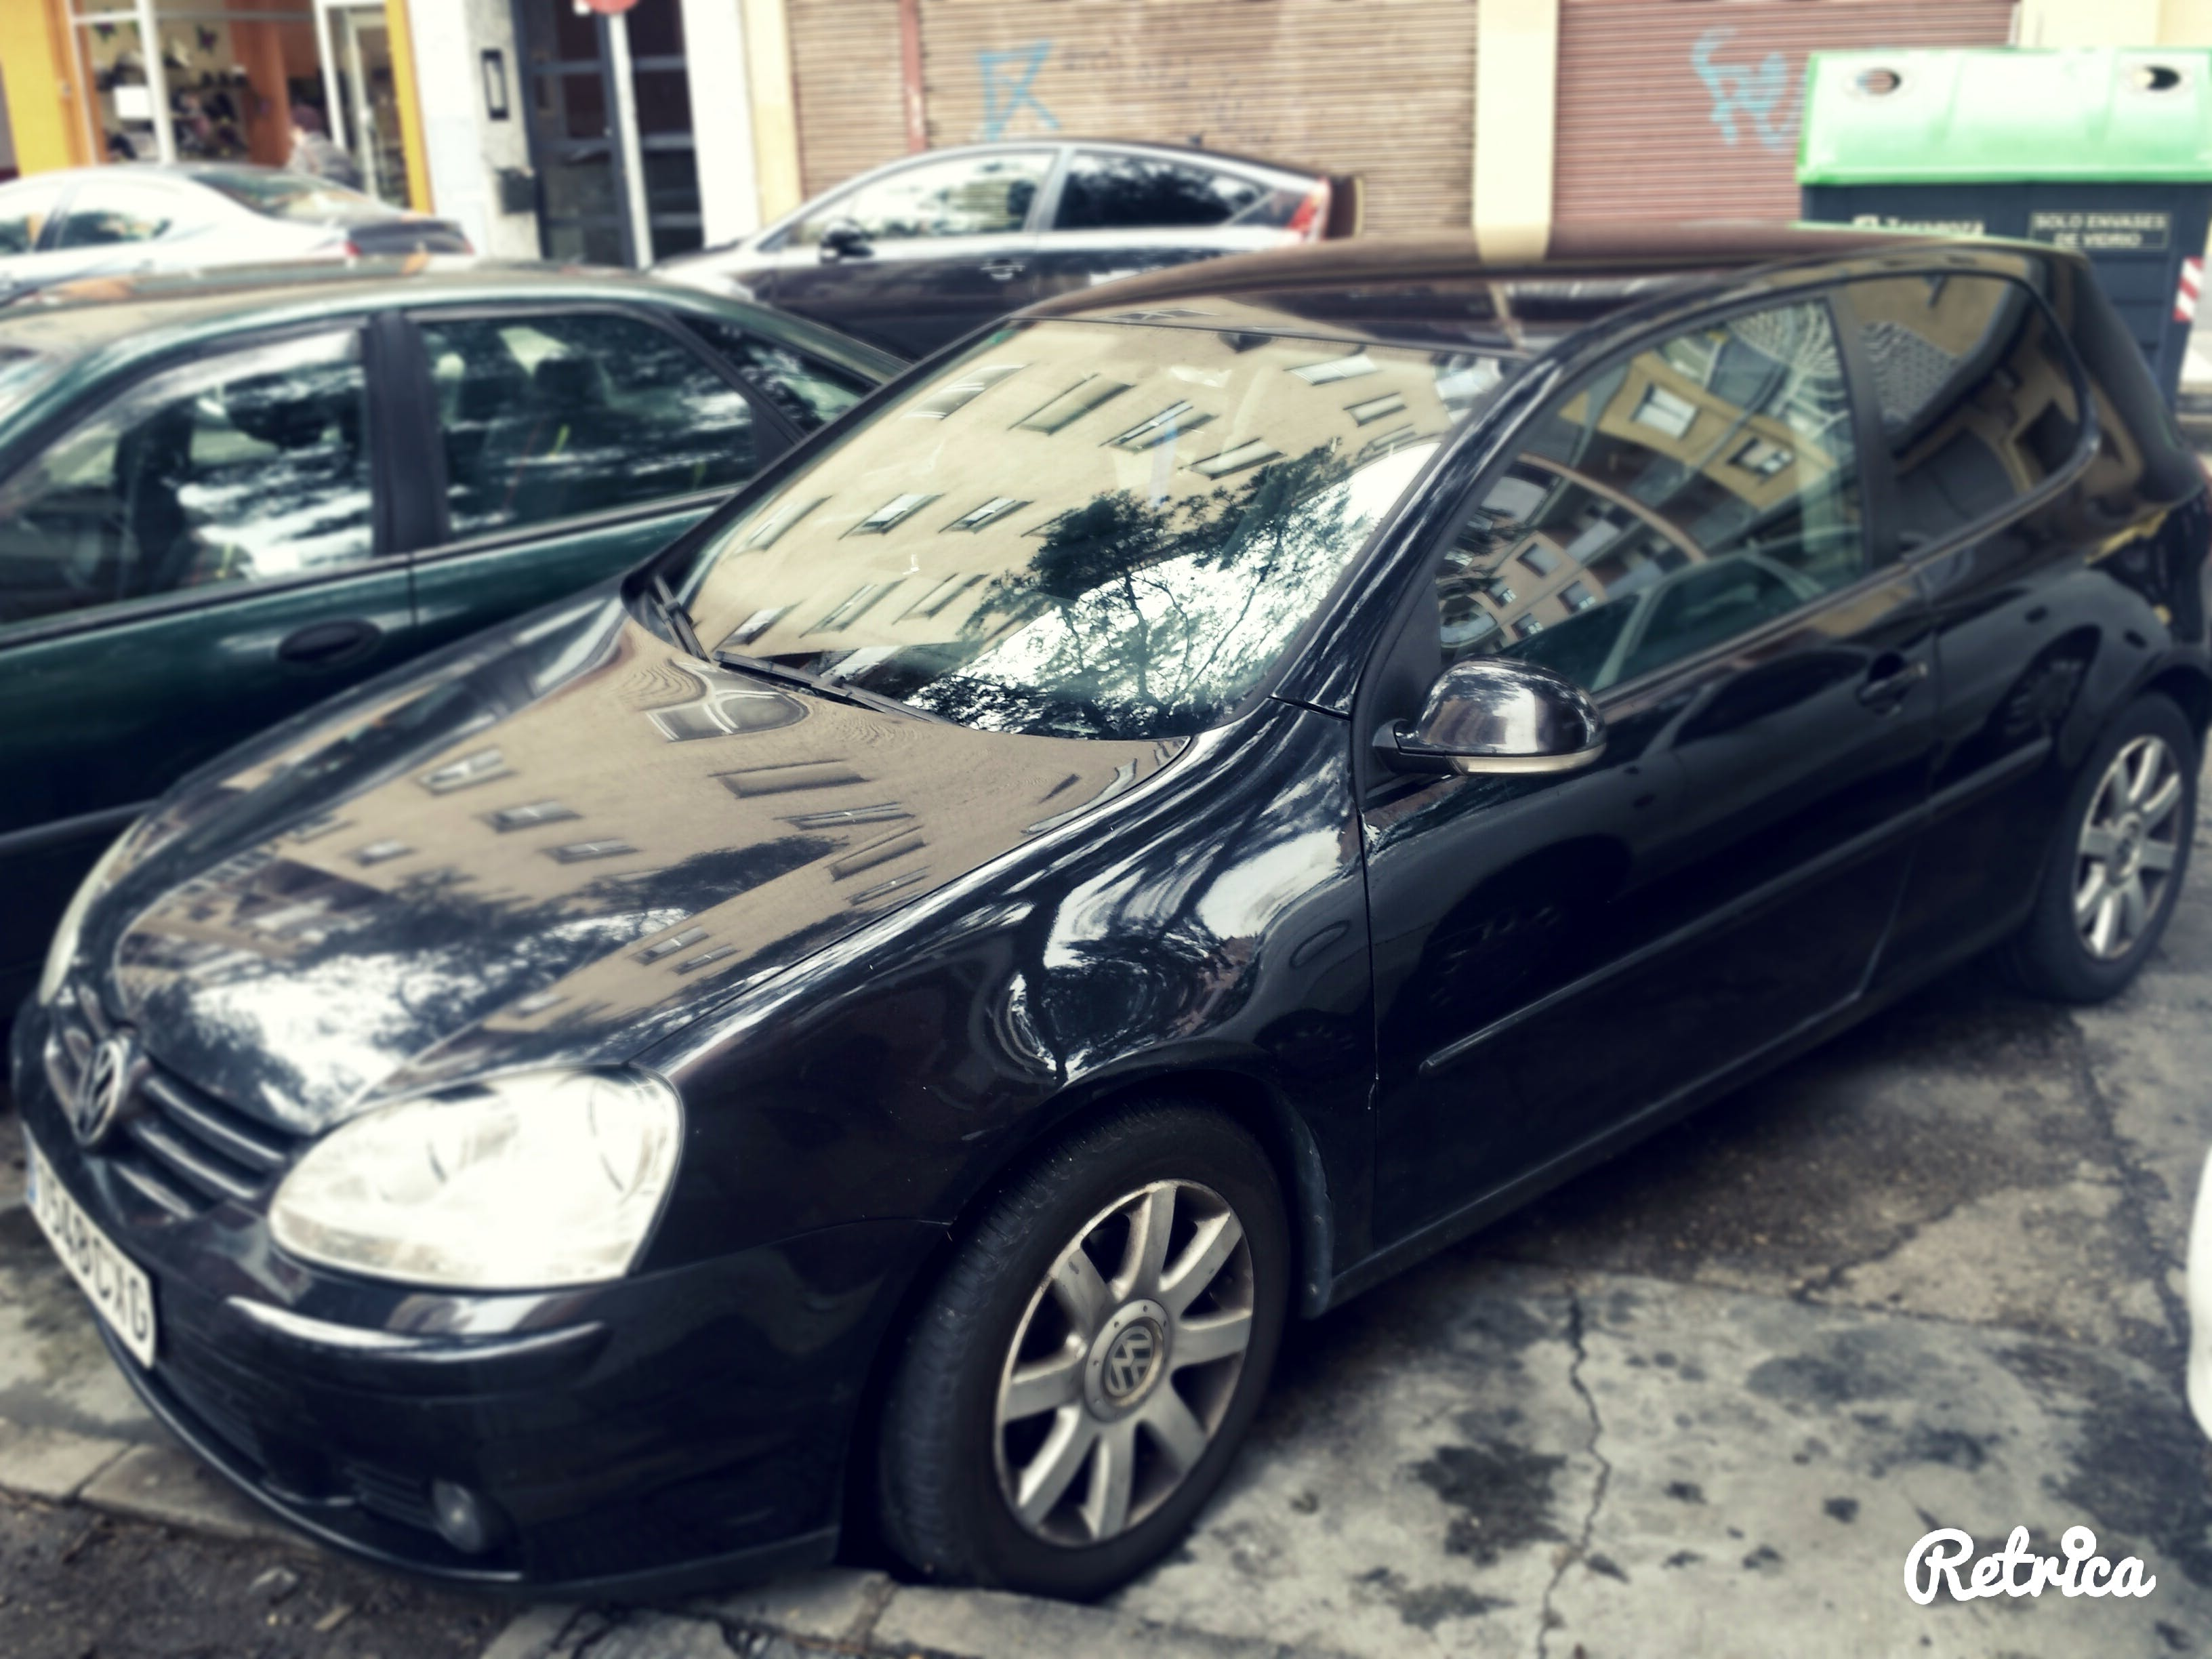 Volkswagen Golf, 2006, Gasolina